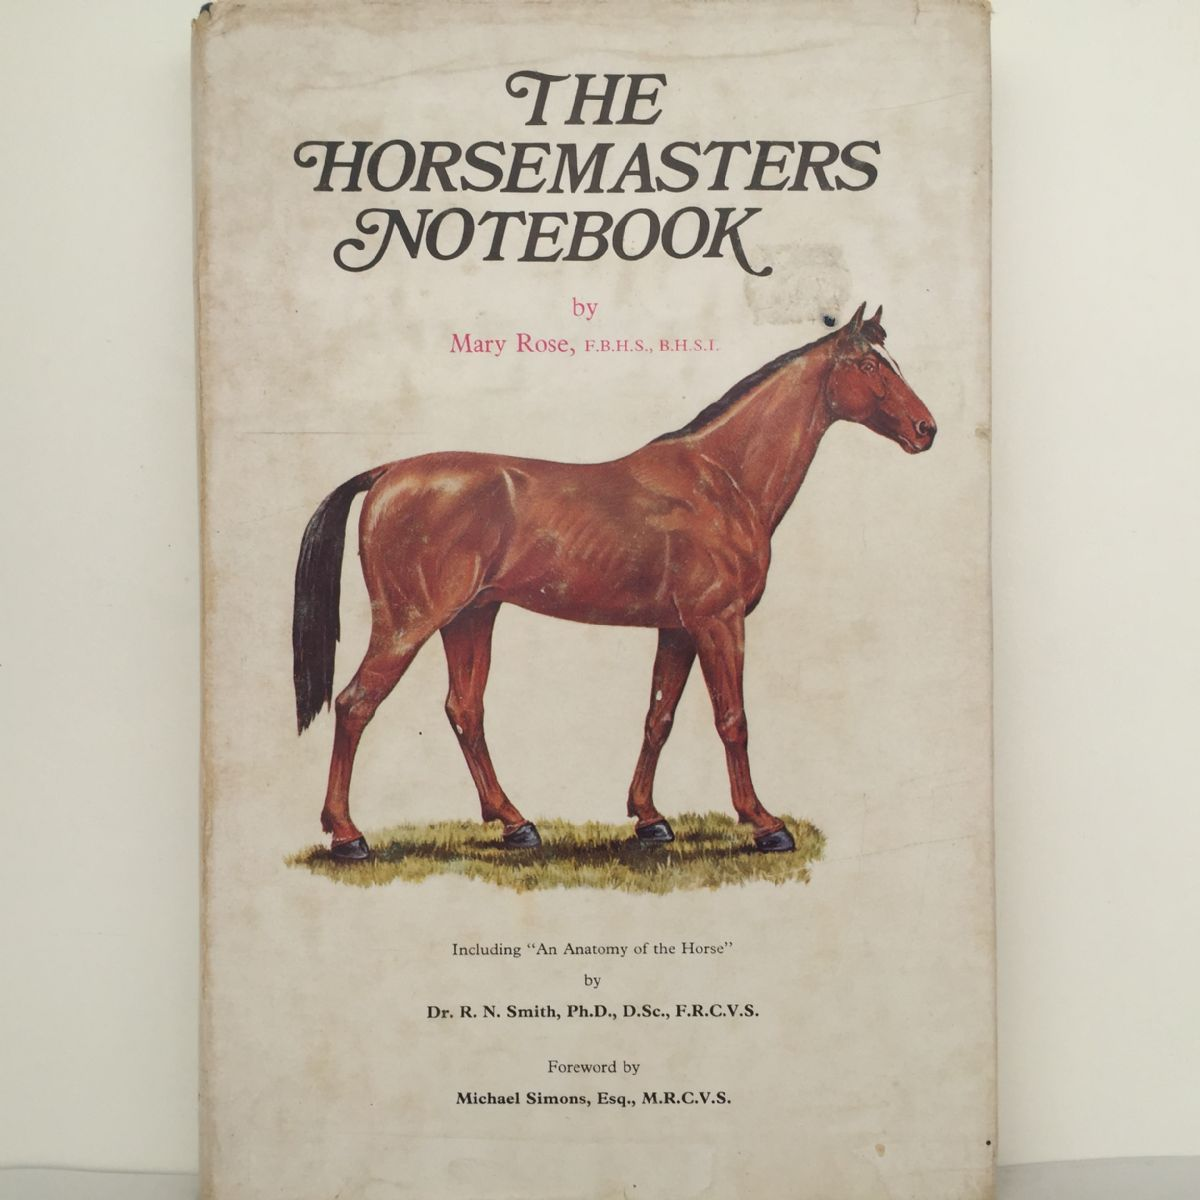 The Horsemasters Notebook